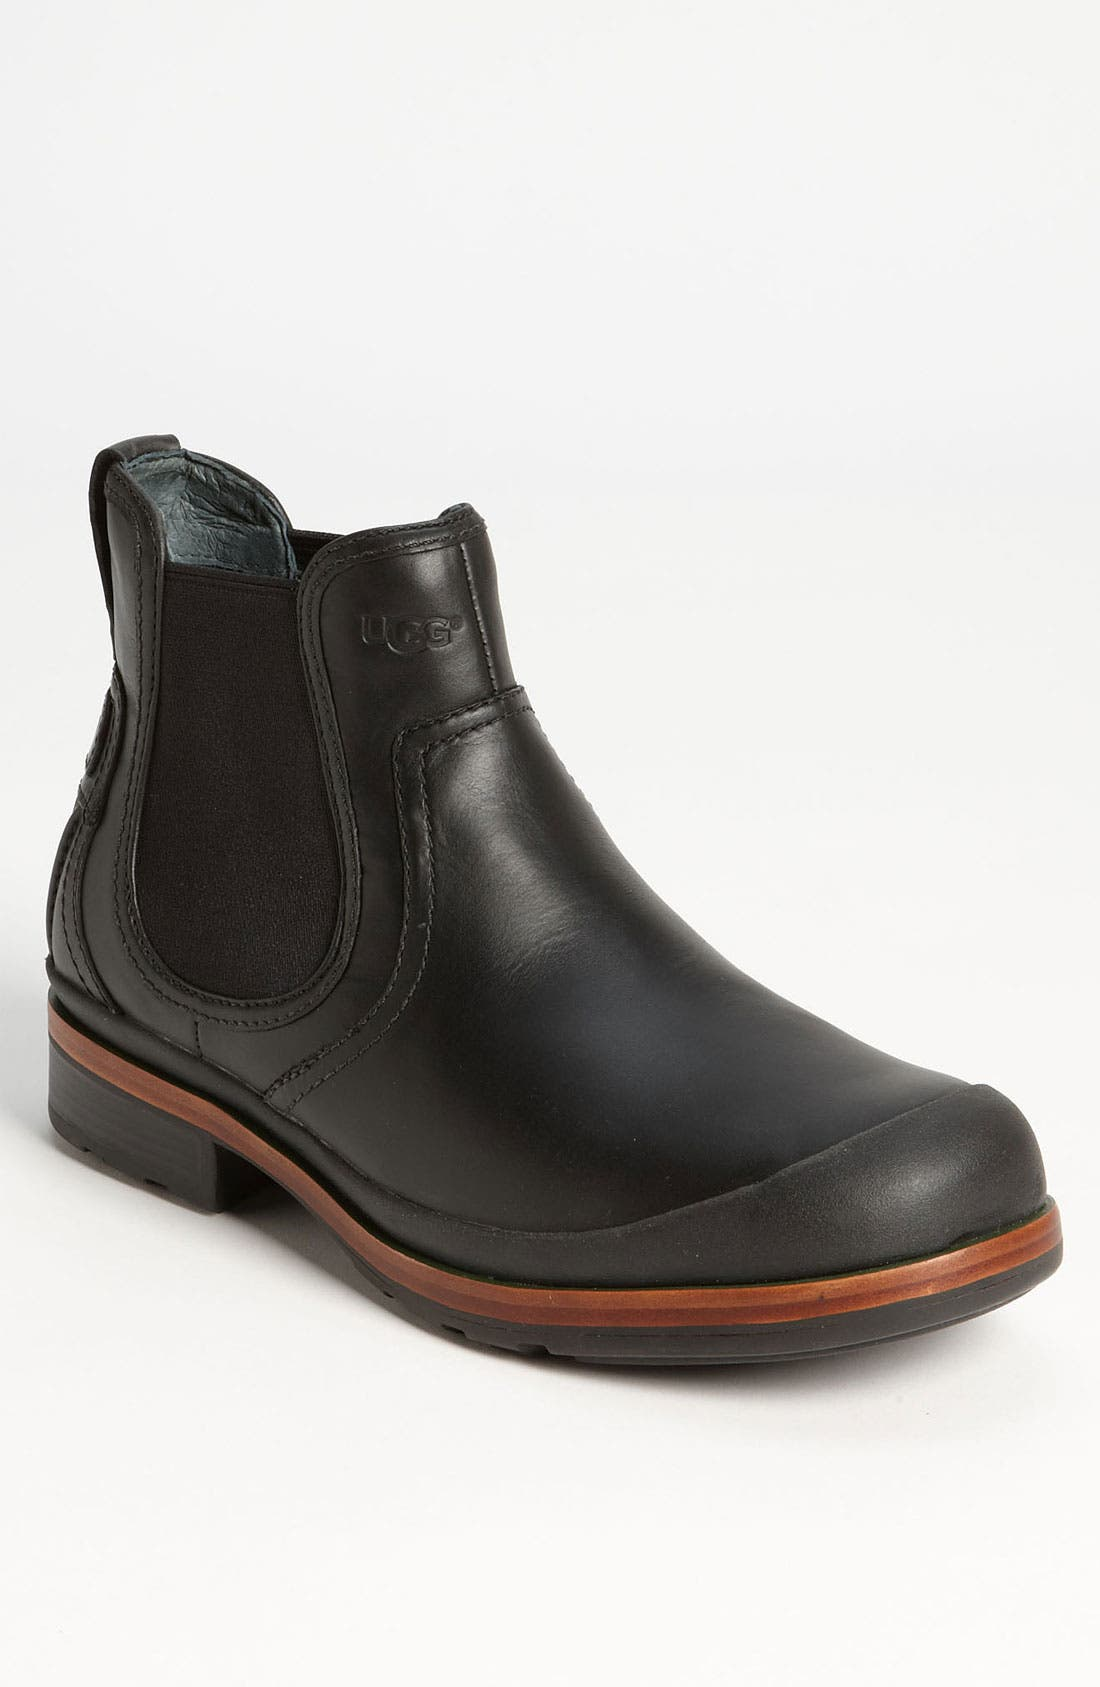 Australia 'Matteson' Chelsea Boot,                             Main thumbnail 1, color,                             001